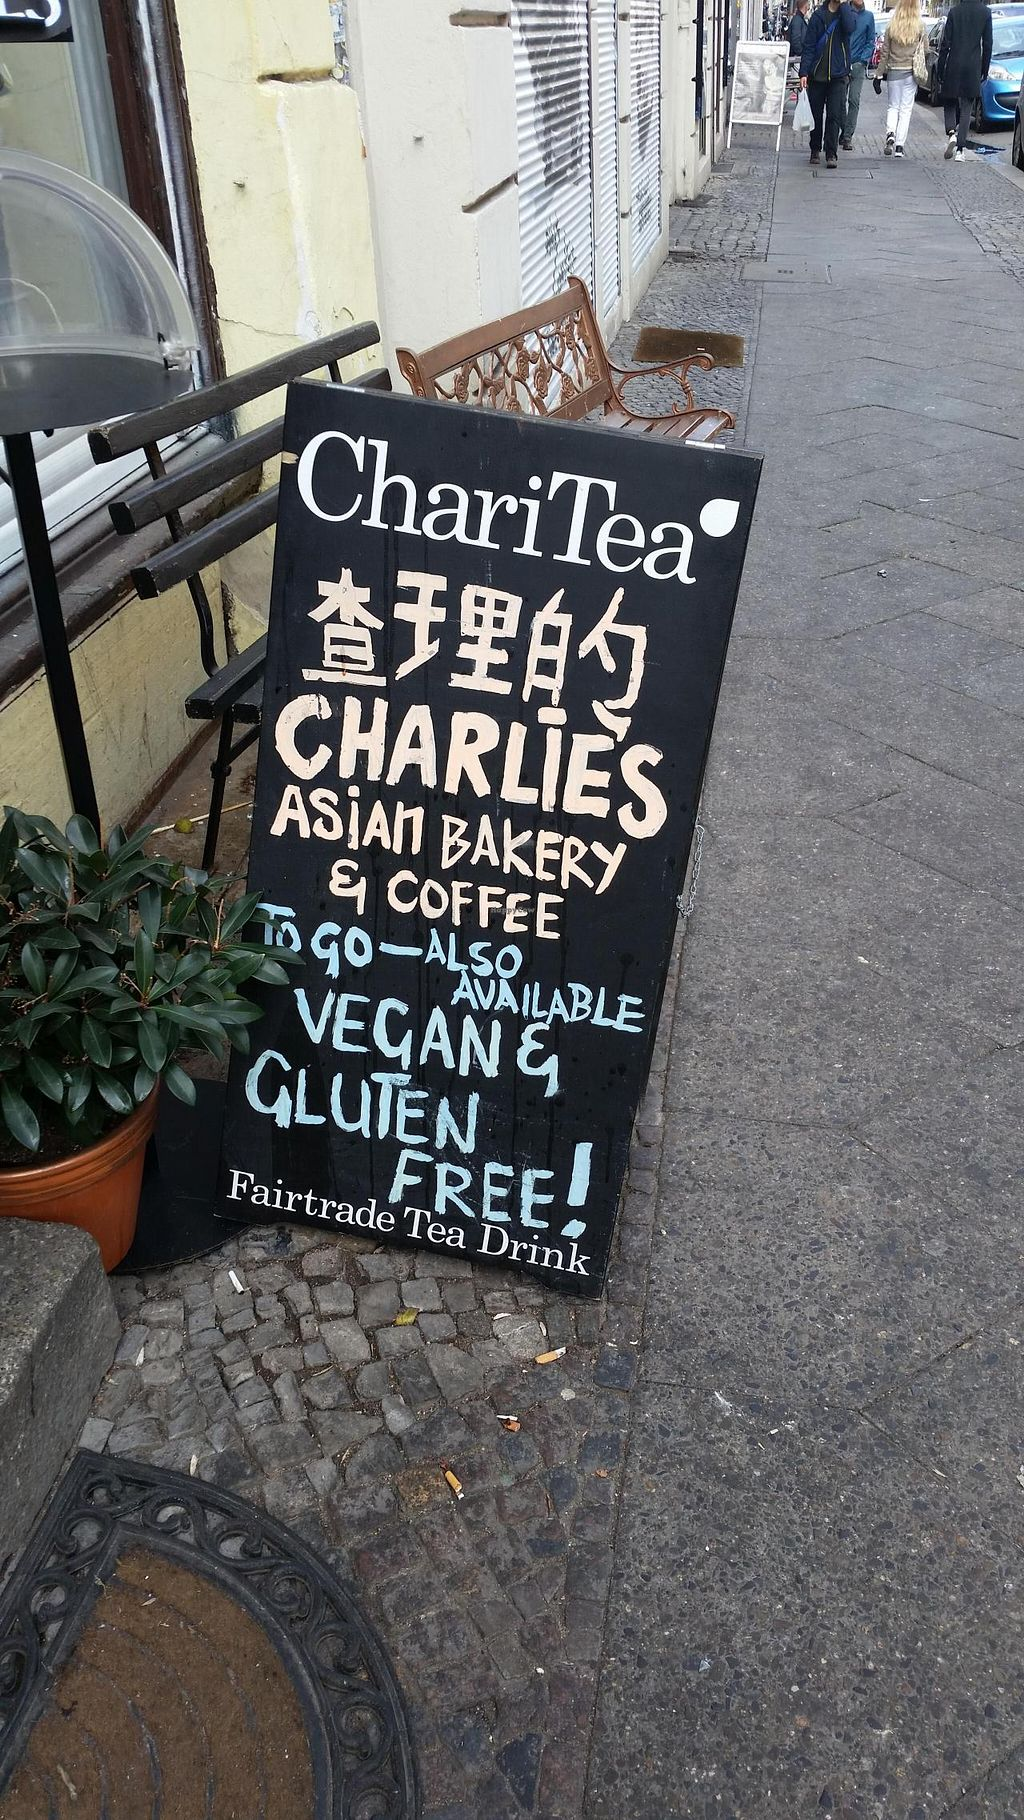 """Photo of CLOSED: Charlie's Vegan Food & Coffee  by <a href=""""/members/profile/autosblindo"""">autosblindo</a> <br/>panel <br/> May 3, 2015  - <a href='/contact/abuse/image/50935/100989'>Report</a>"""